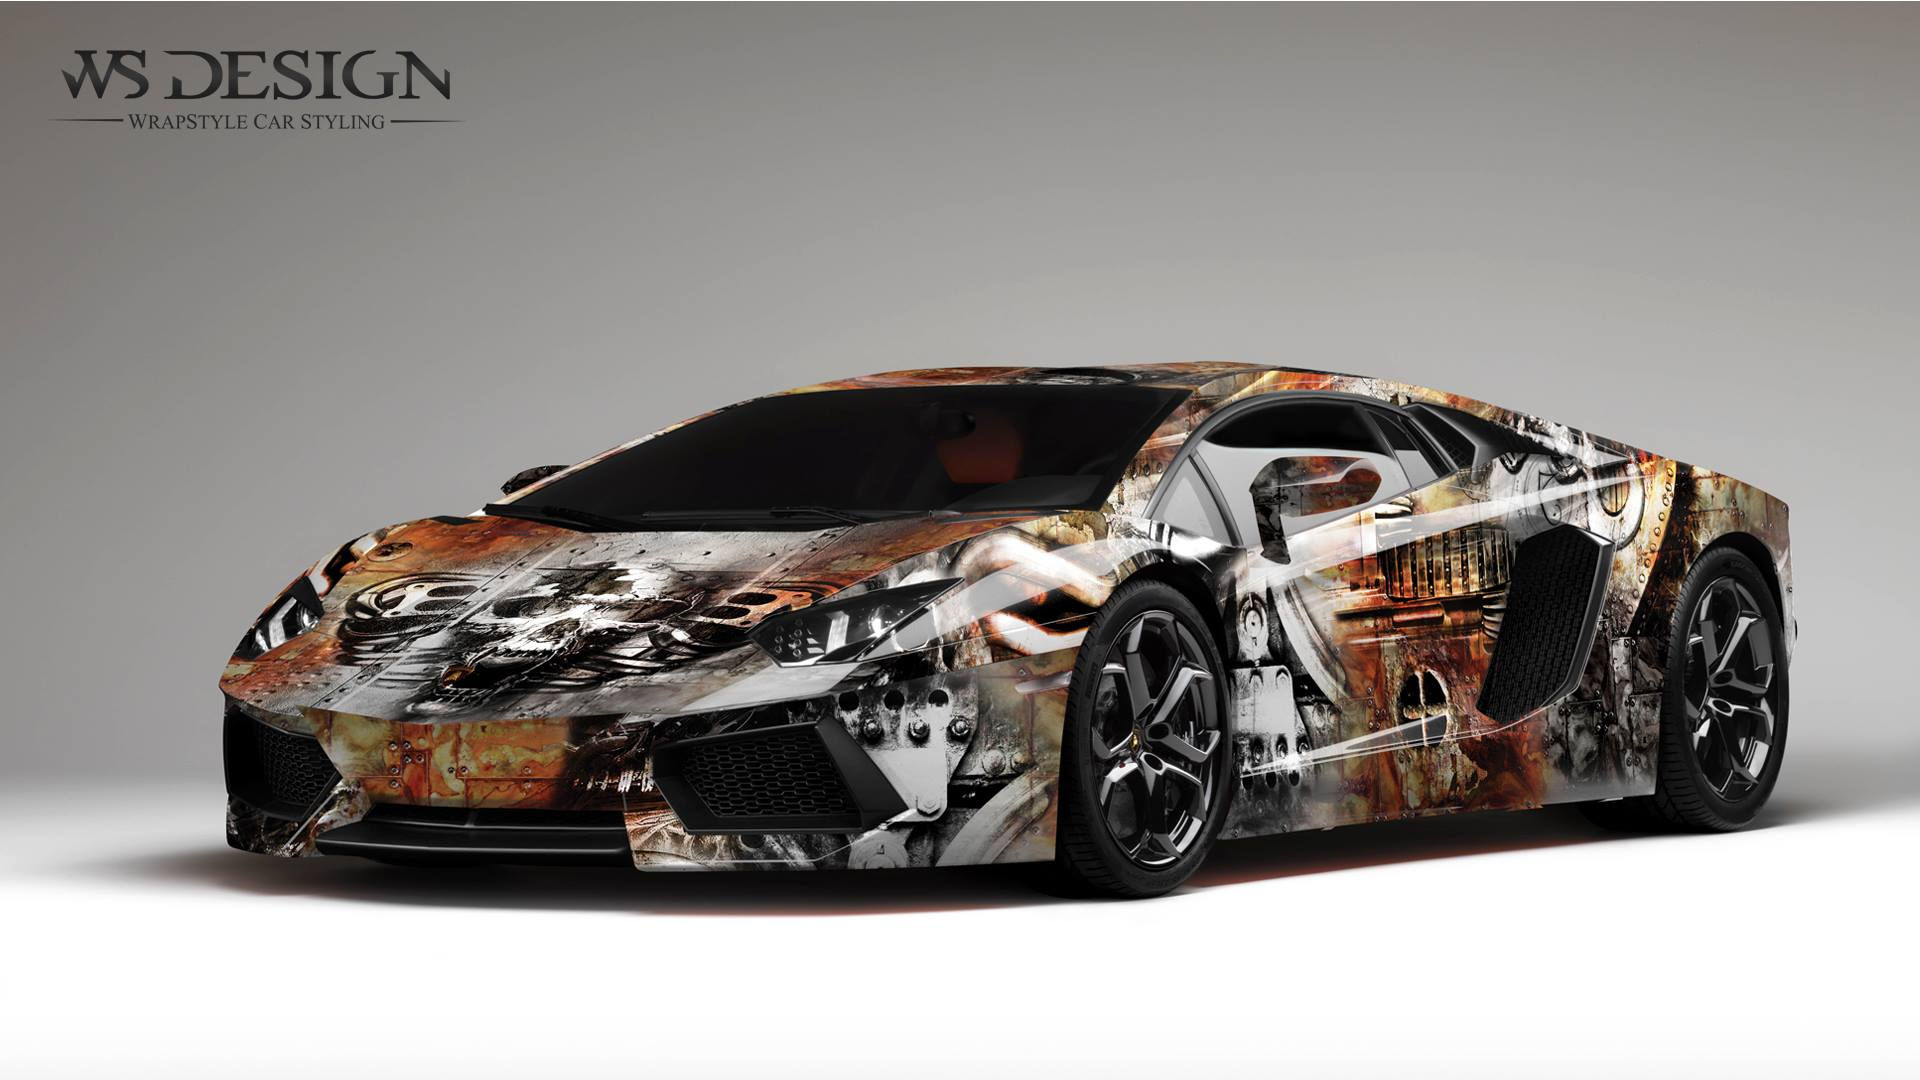 Home Car Wrapping Lamborghini Aventador Art Design Wraps By WS Designs.  Rust Design